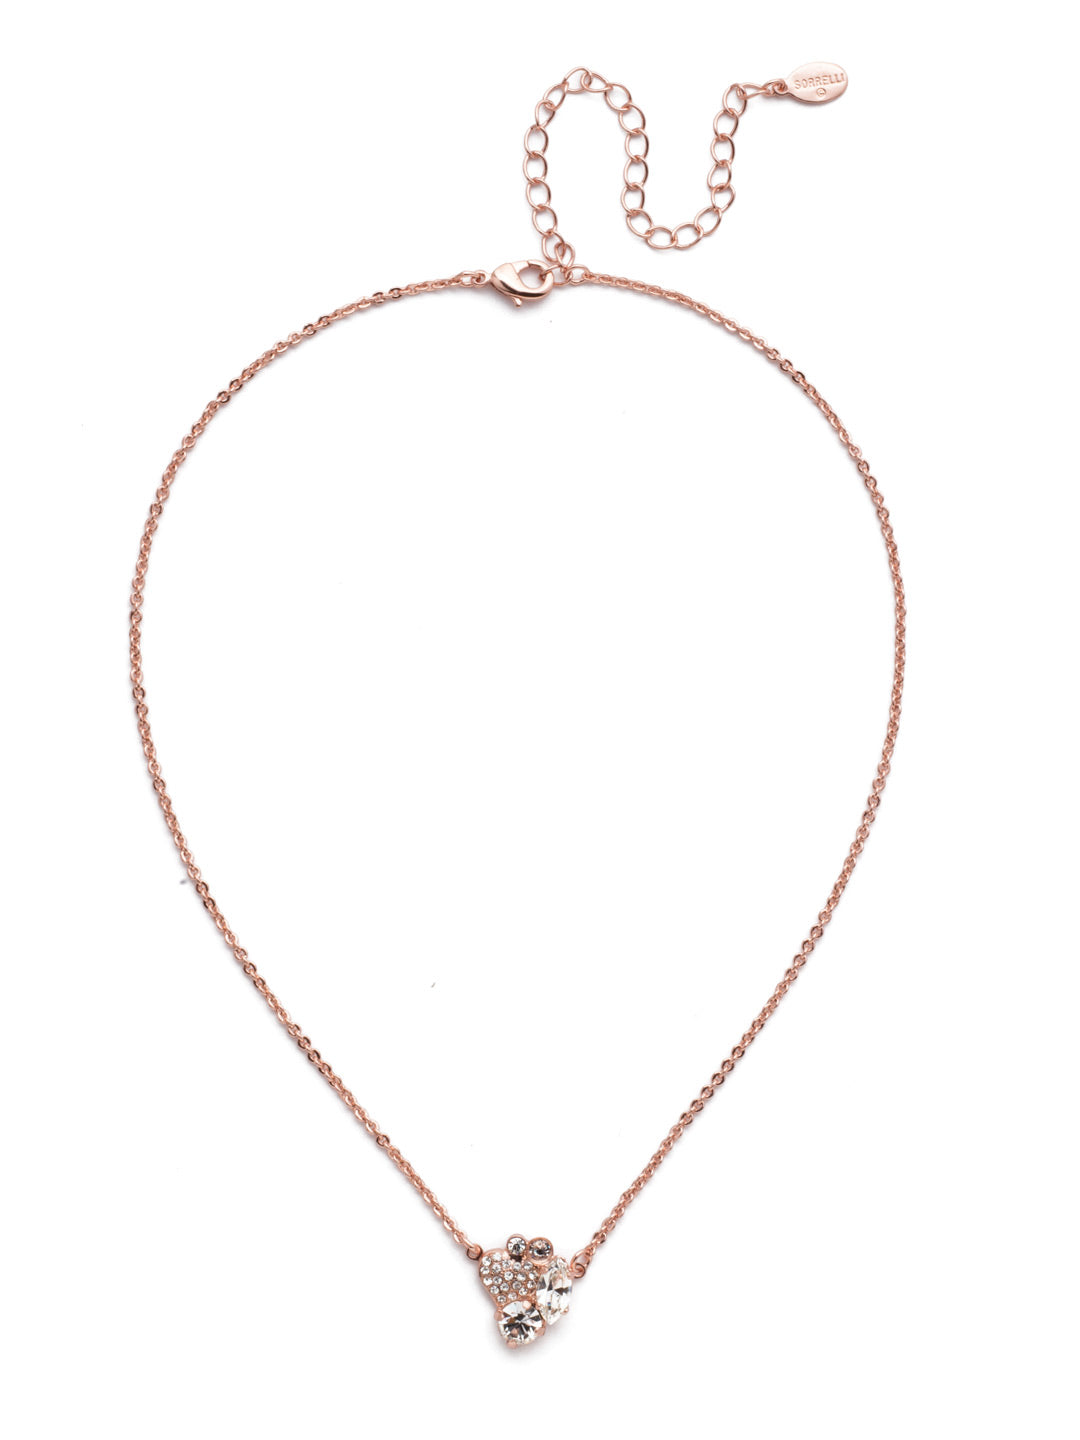 Wilhelmina Pendant Necklace - NER6RGCRY